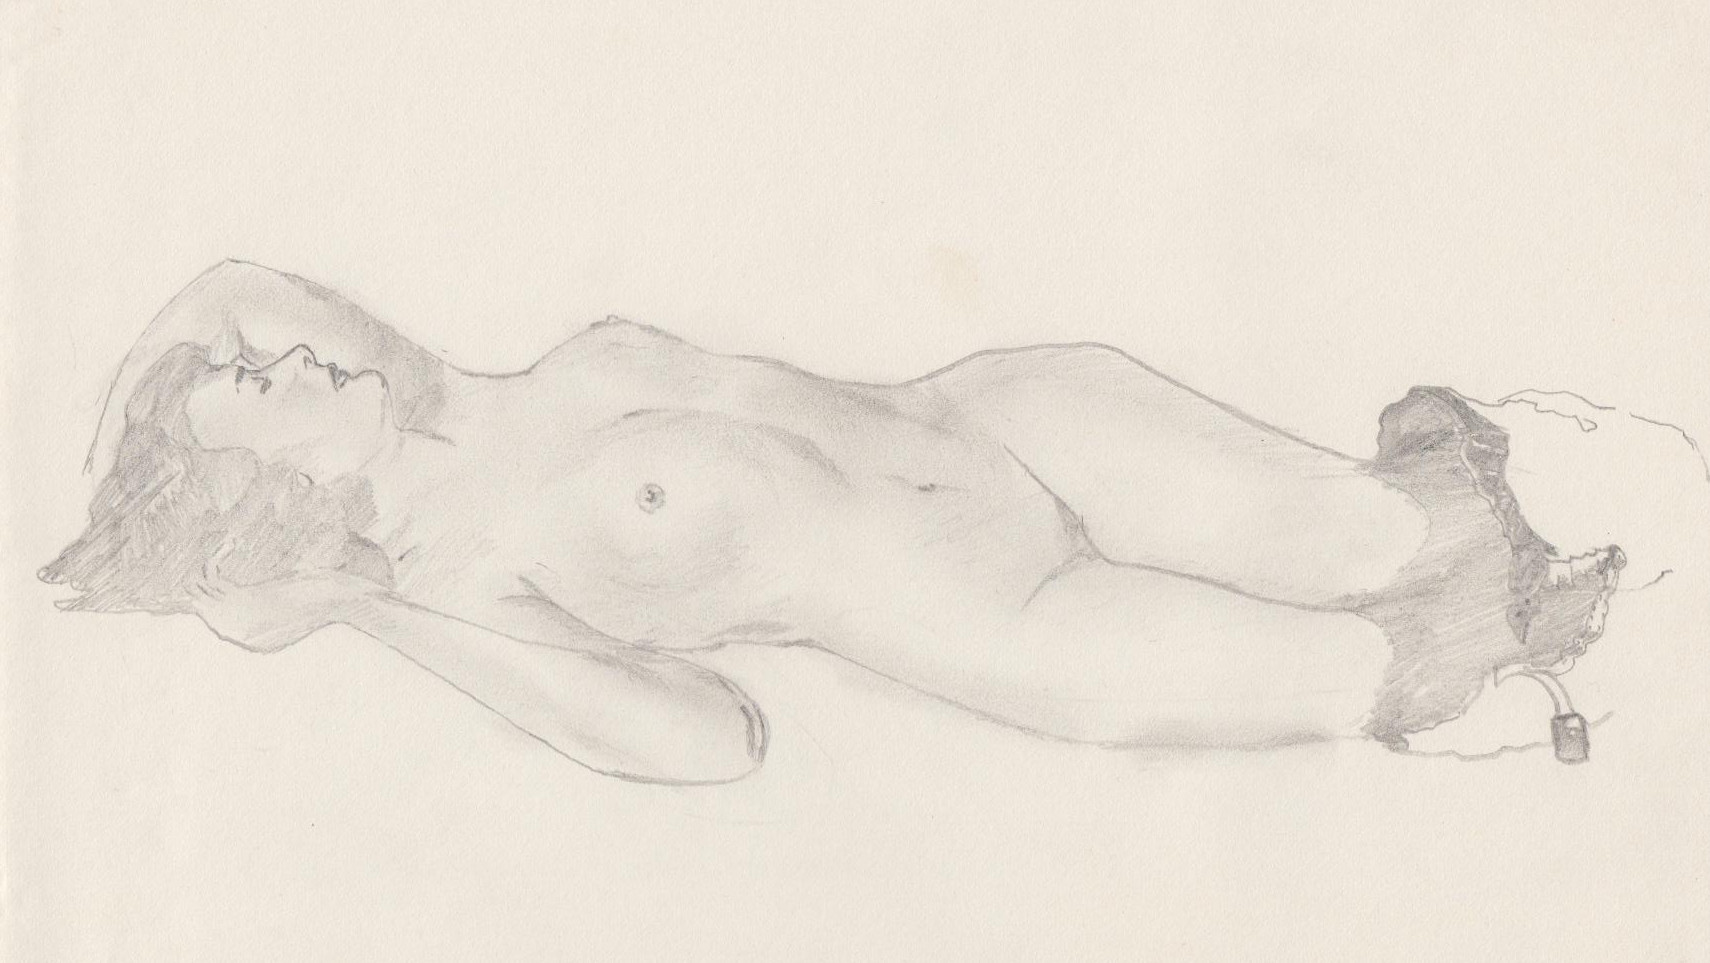 Asleep nude - Pencil sketch